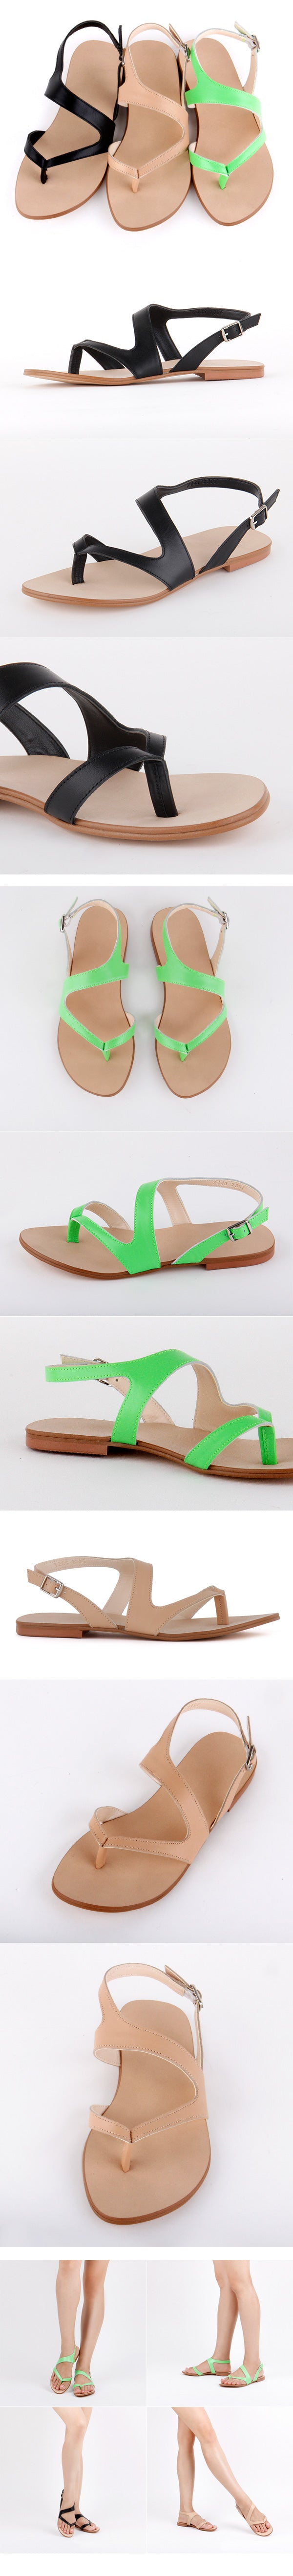 *PUMP IT Green size 34.5